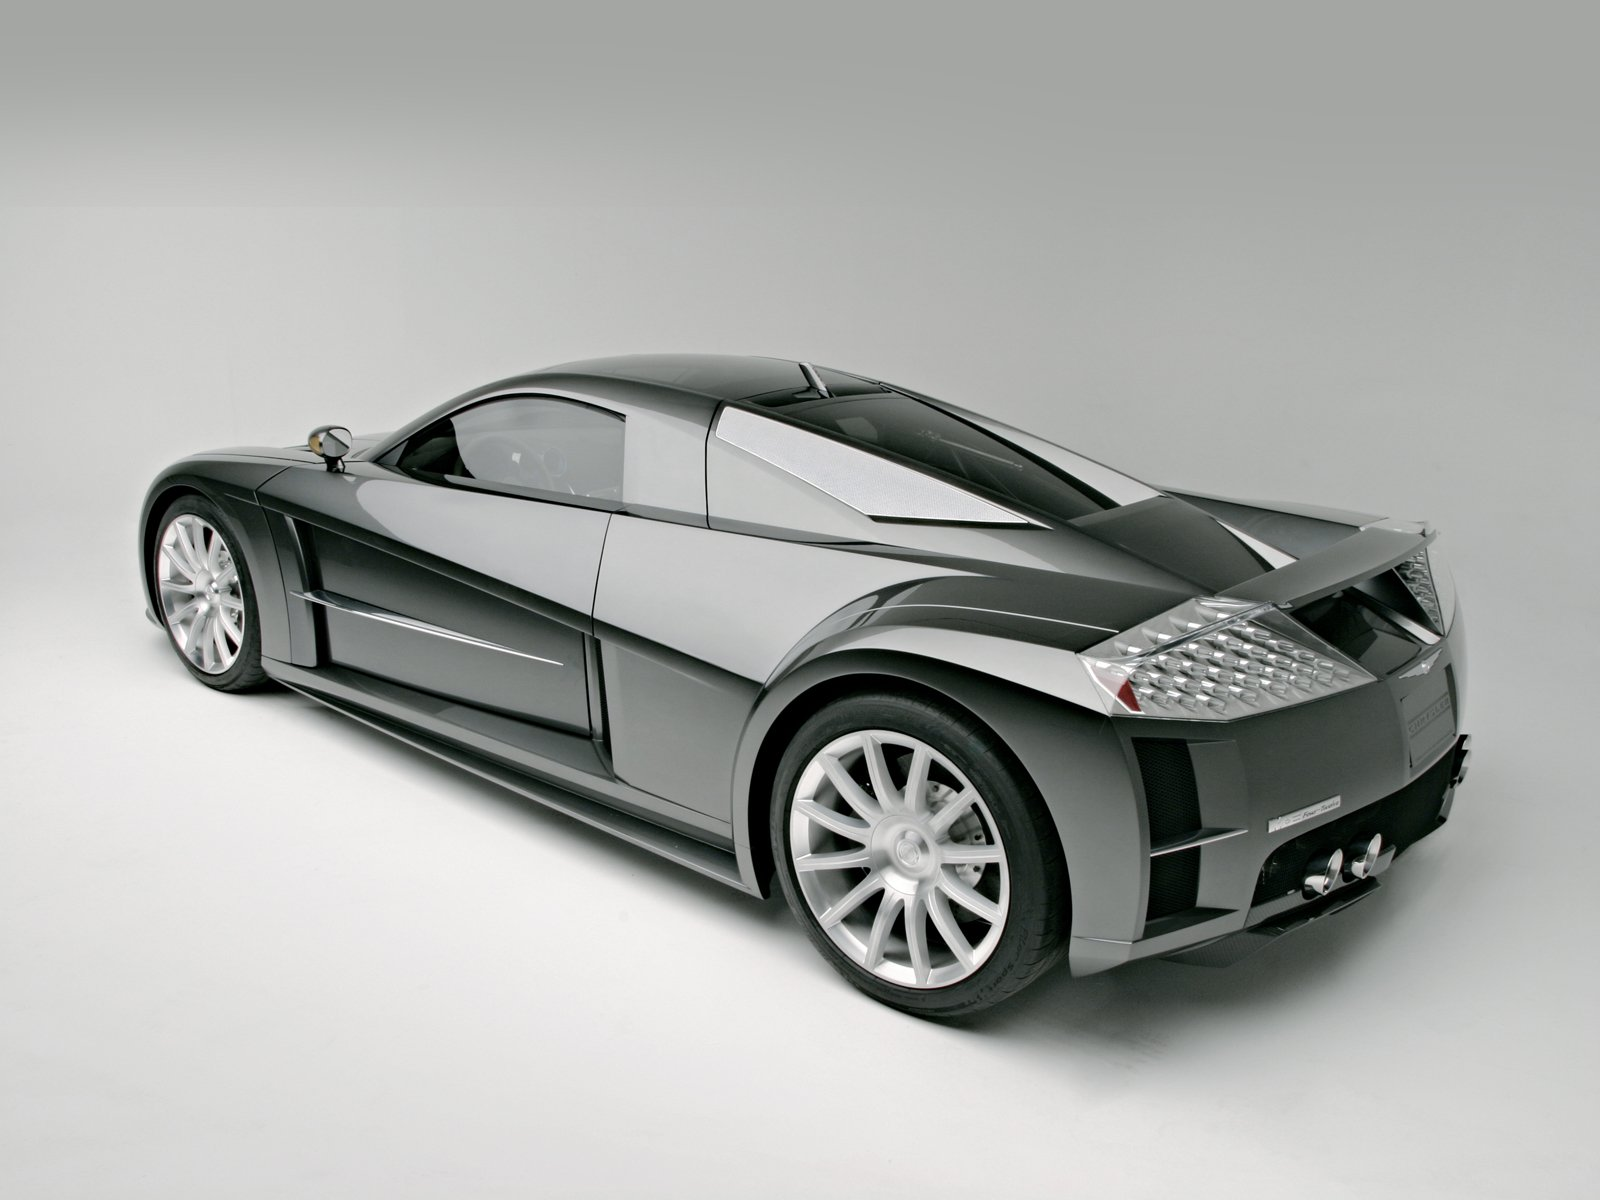 Chrysler ME 412 2